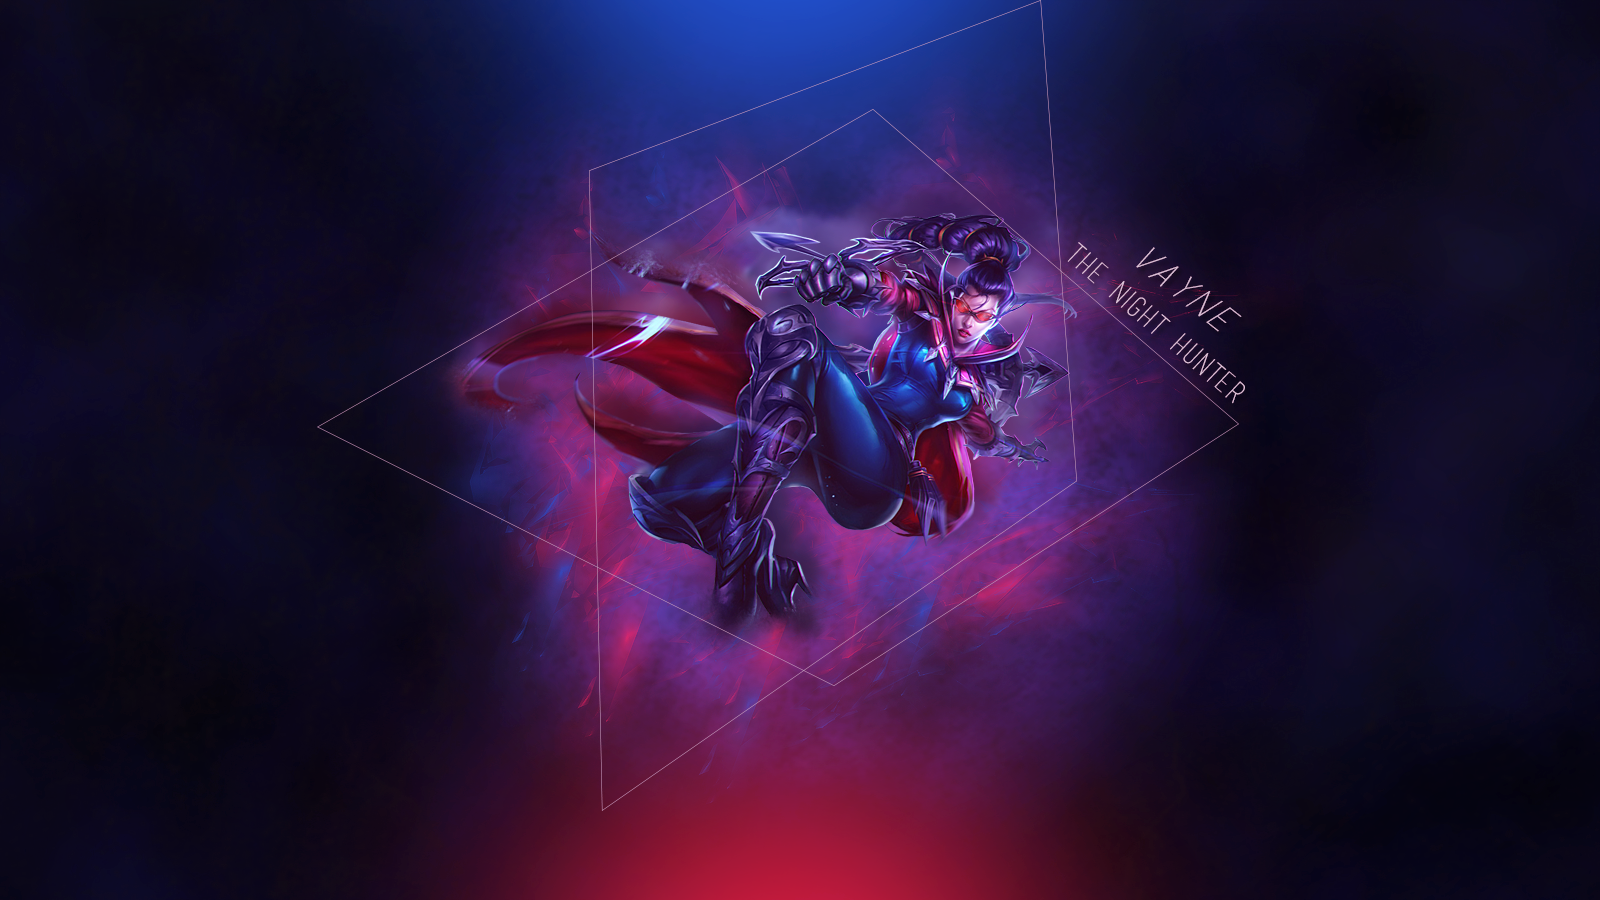 Vayne - LoLWallpapers